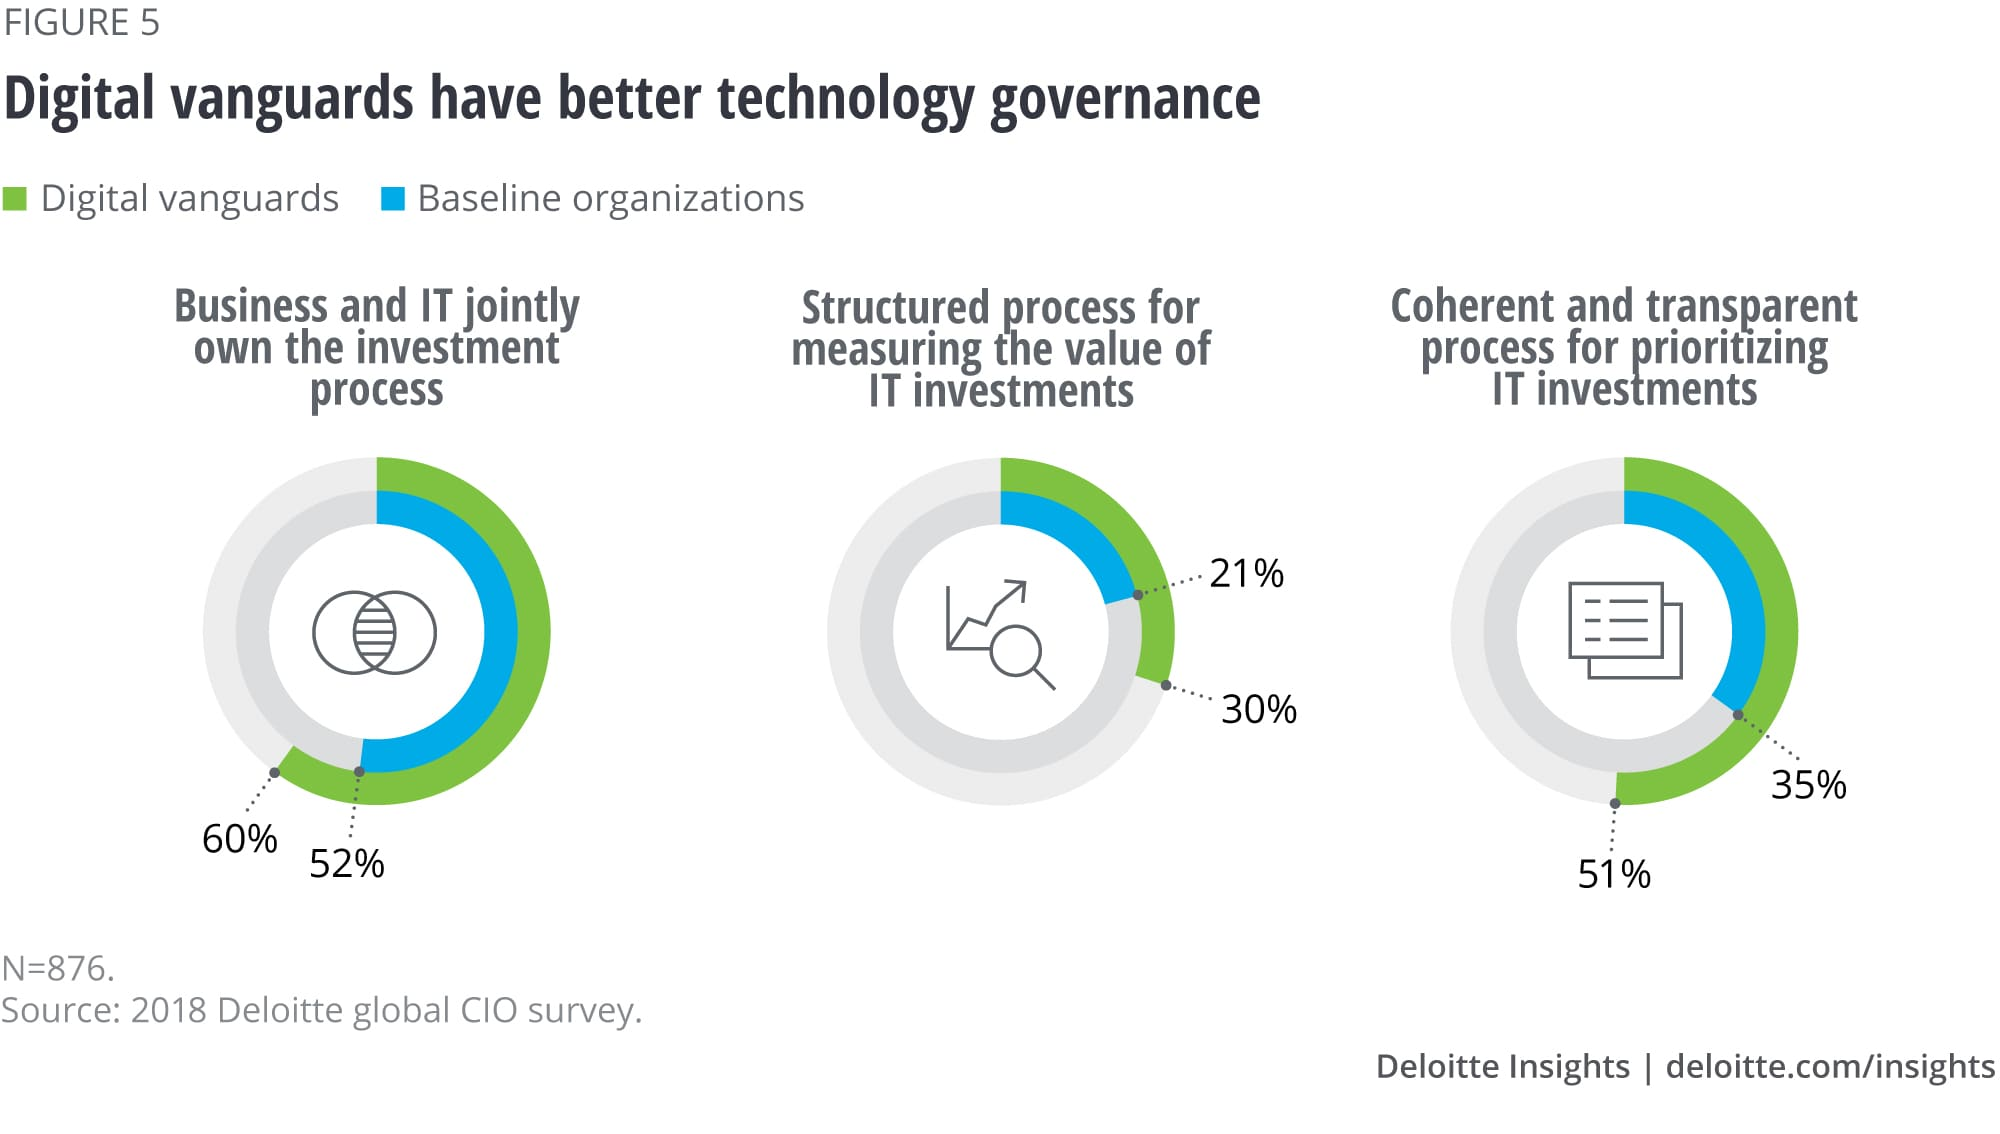 Digital vanguards have better technology governance